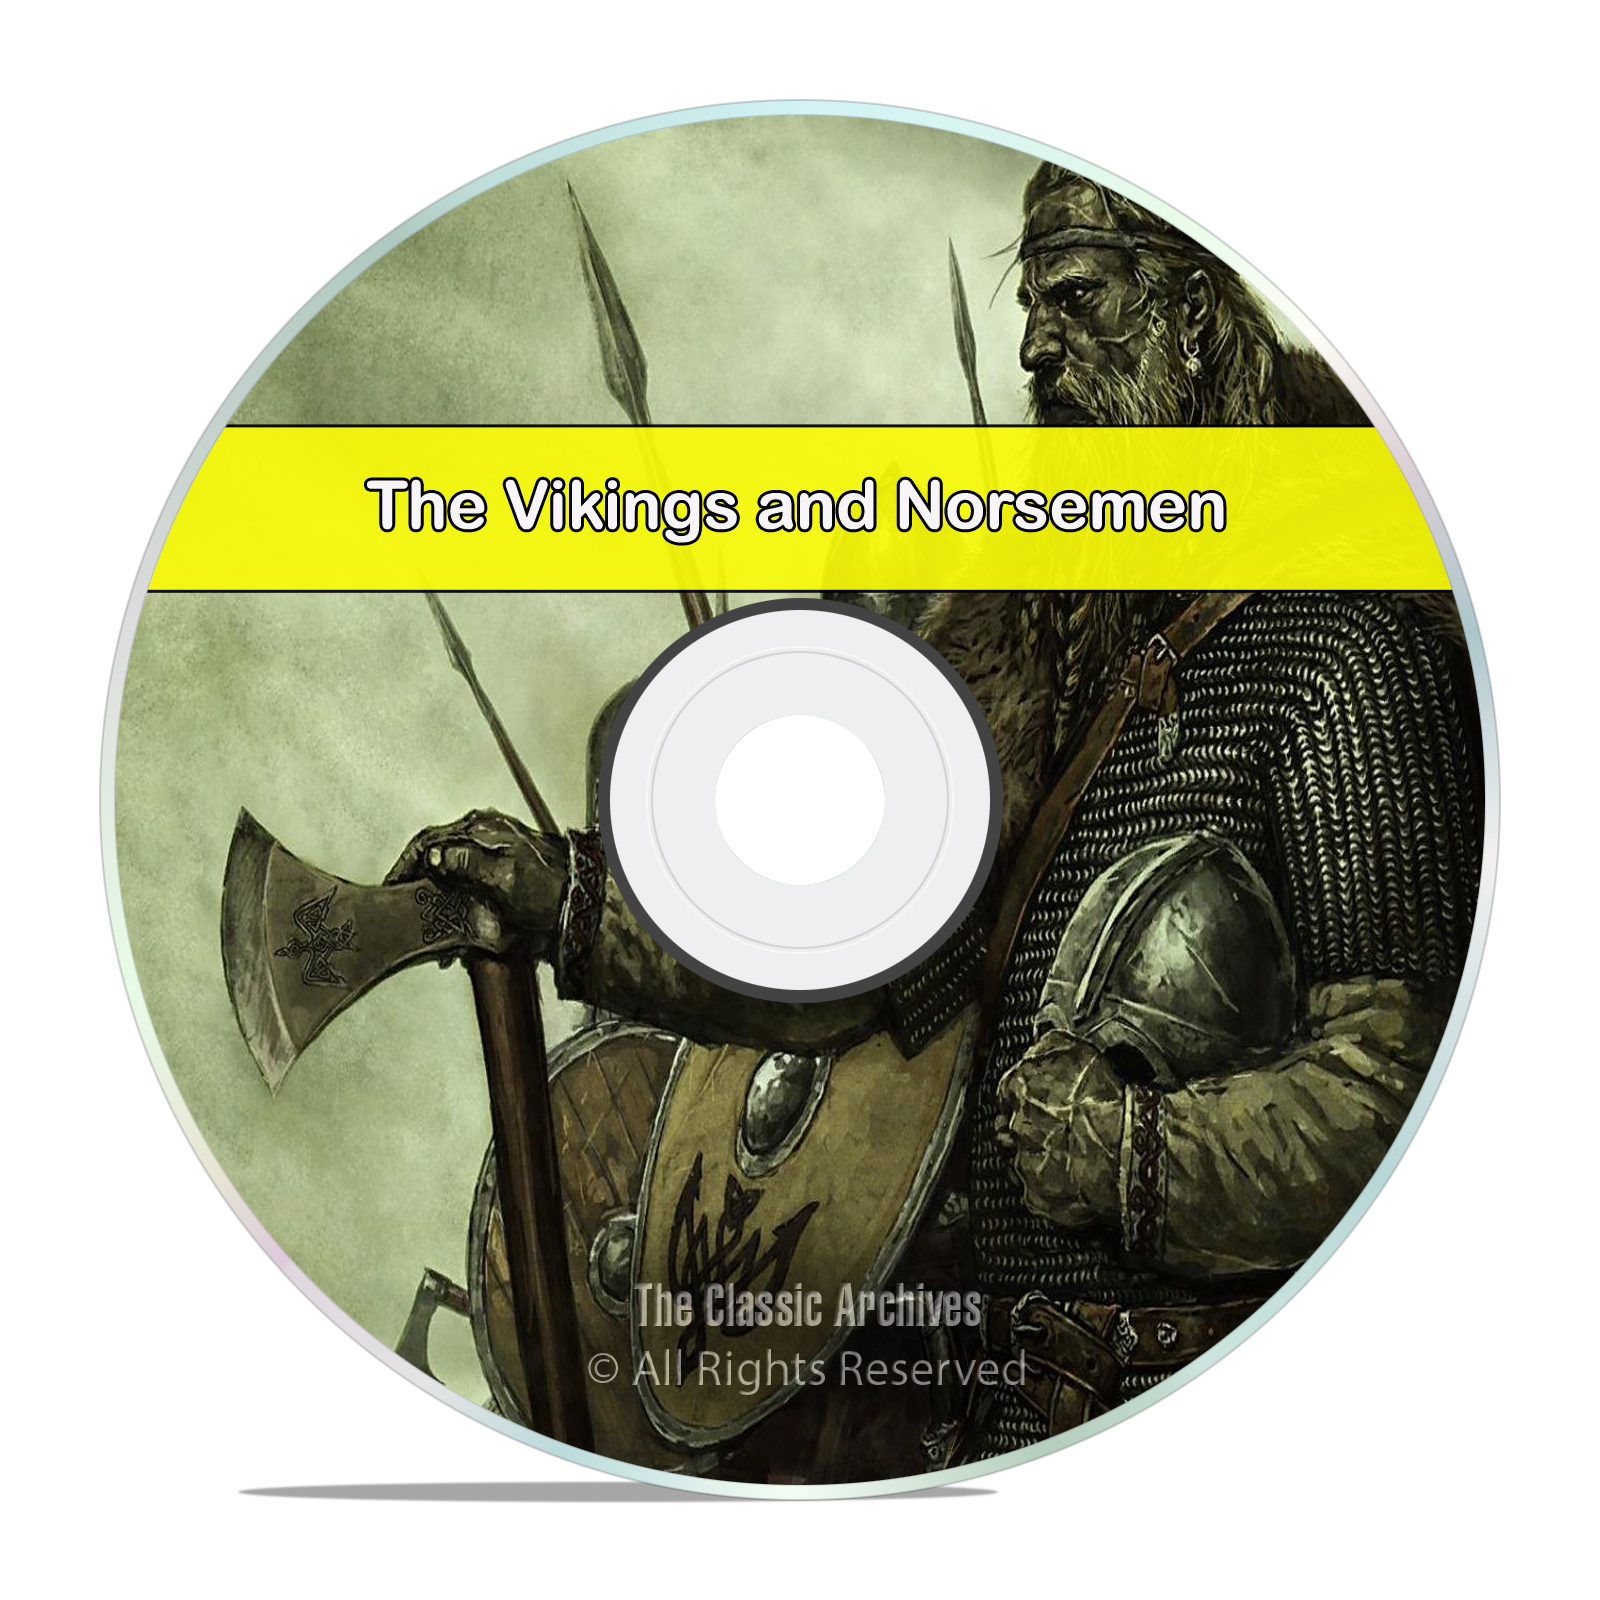 Stories & History of Vikings & Norsemen, 75 Books, Scandinavia, Ships, DVD